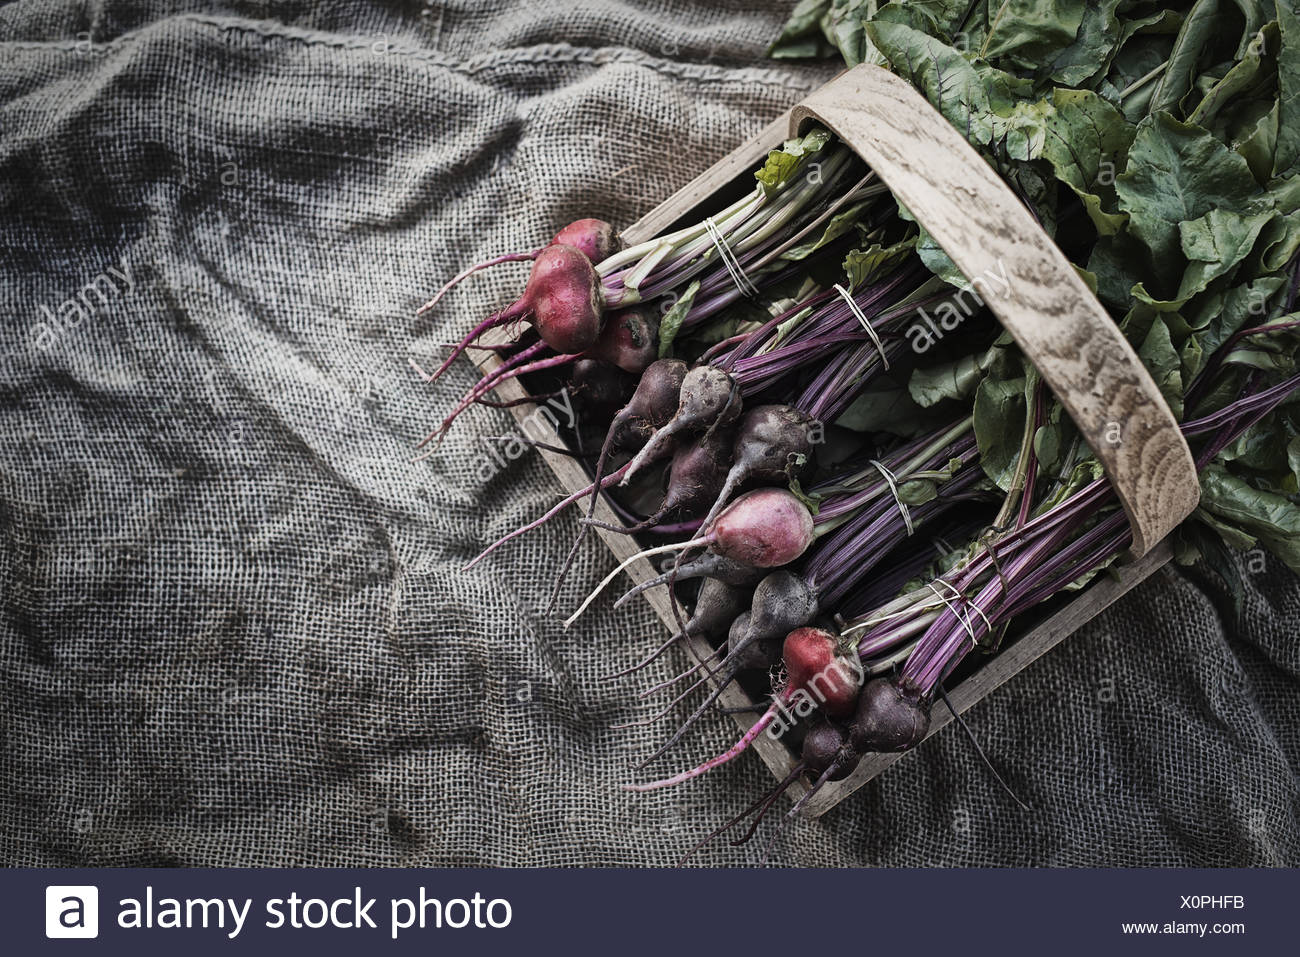 Woodstock New York USA Organic Assorted Beets with stems just harvested Stock Photo